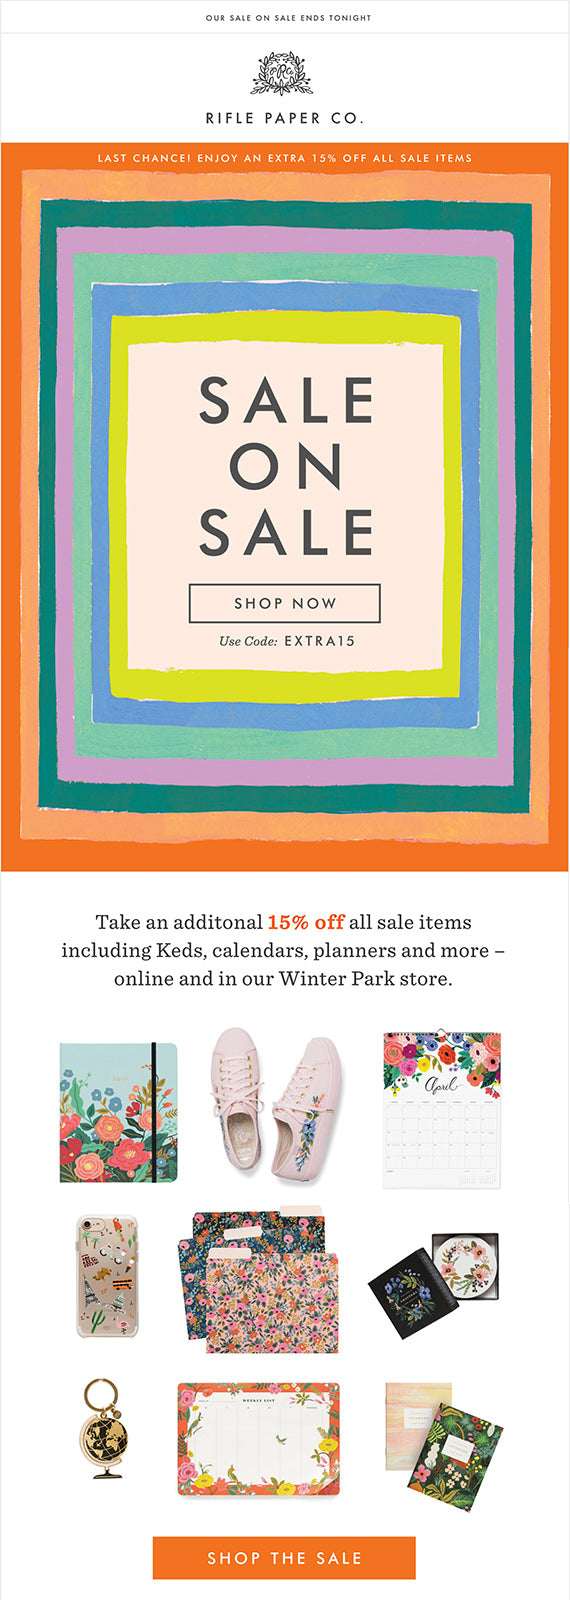 rifle paper co good email marketing example